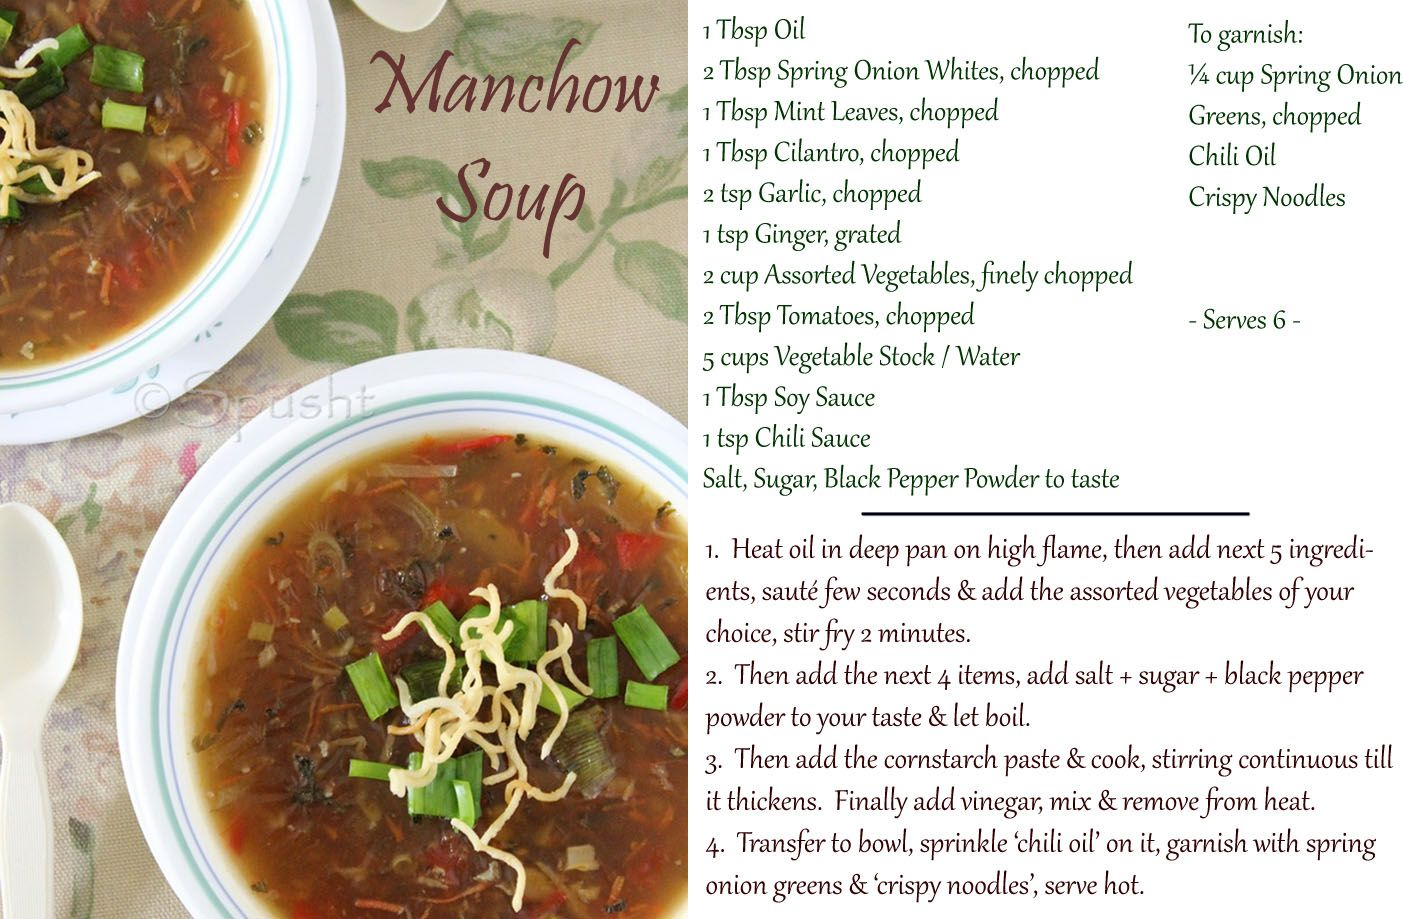 How to make manchow soup indo chinese food food indian vegetarian recipe for manchow soup a popular soup from the indo chinese cuisine that uses many vegetables thickens because of cornstarch and usually has forumfinder Choice Image